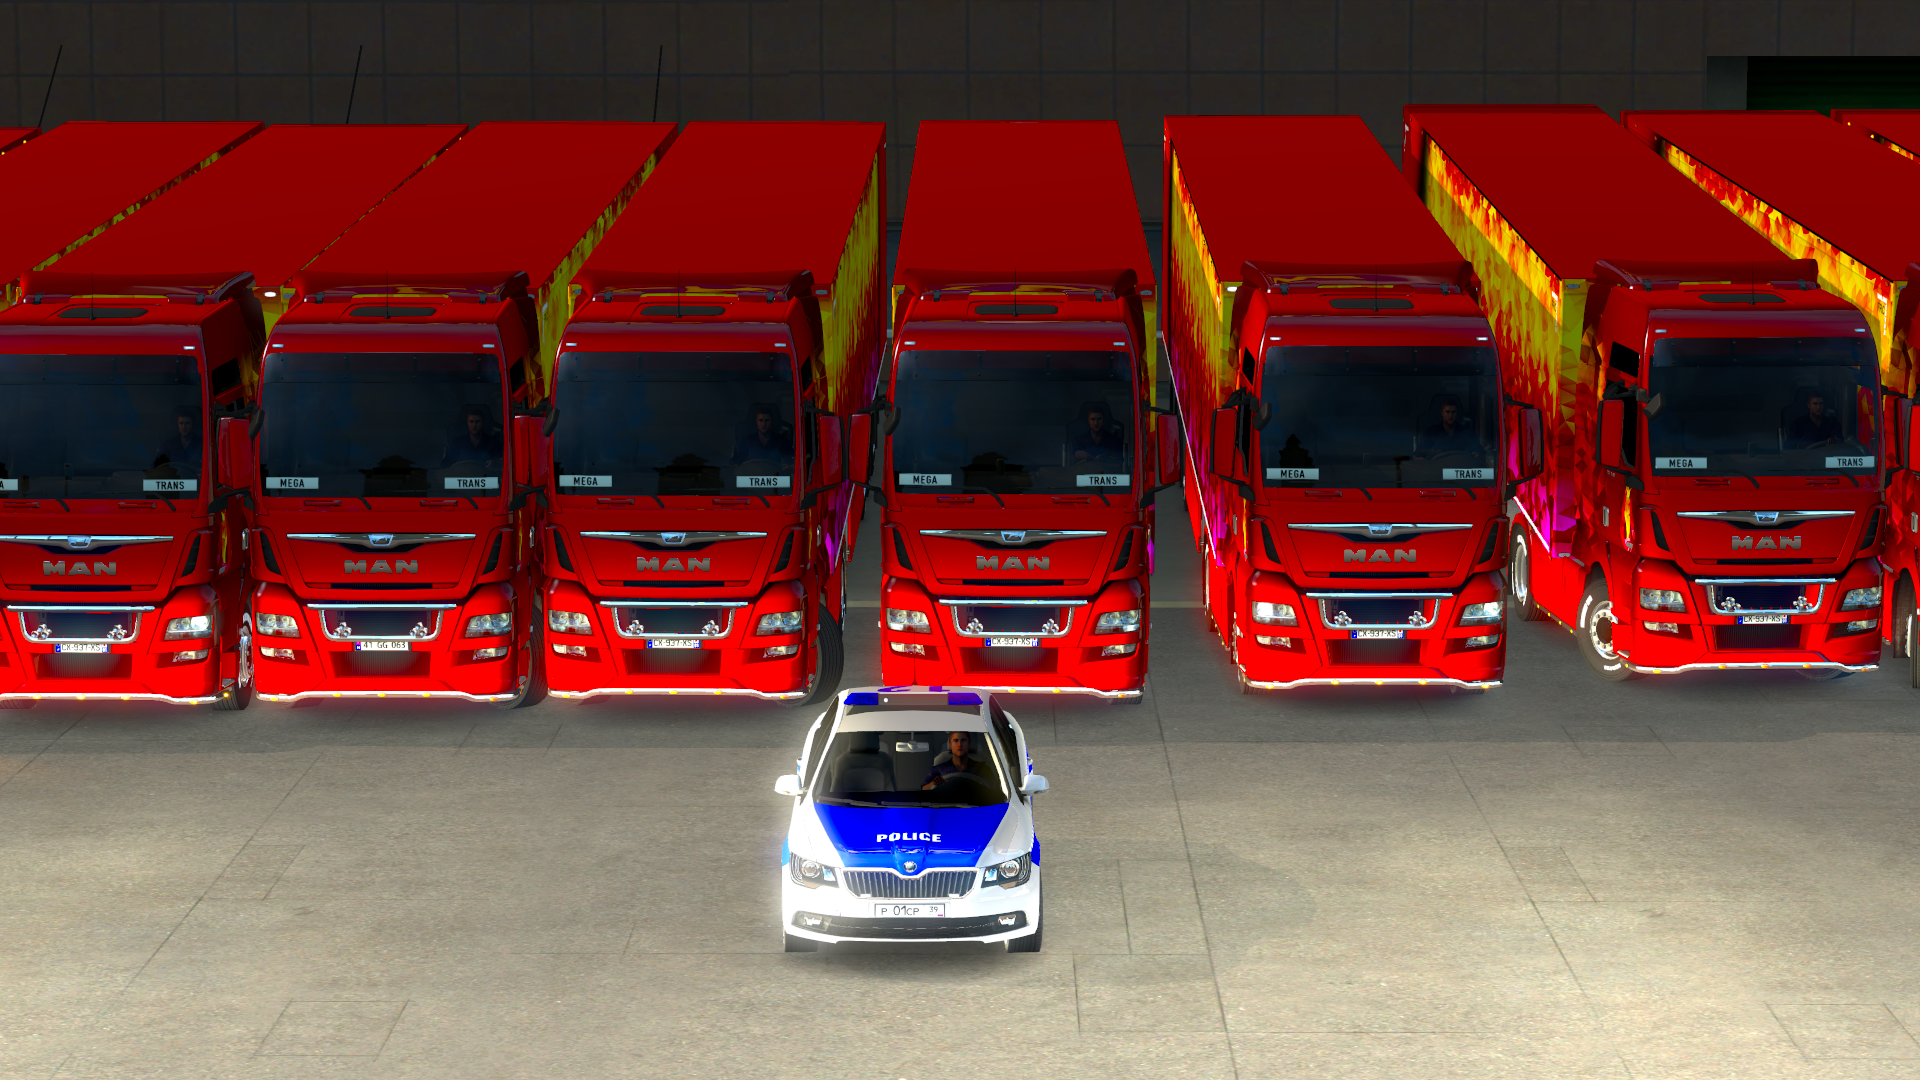 ets2_20190312_210429_00.png